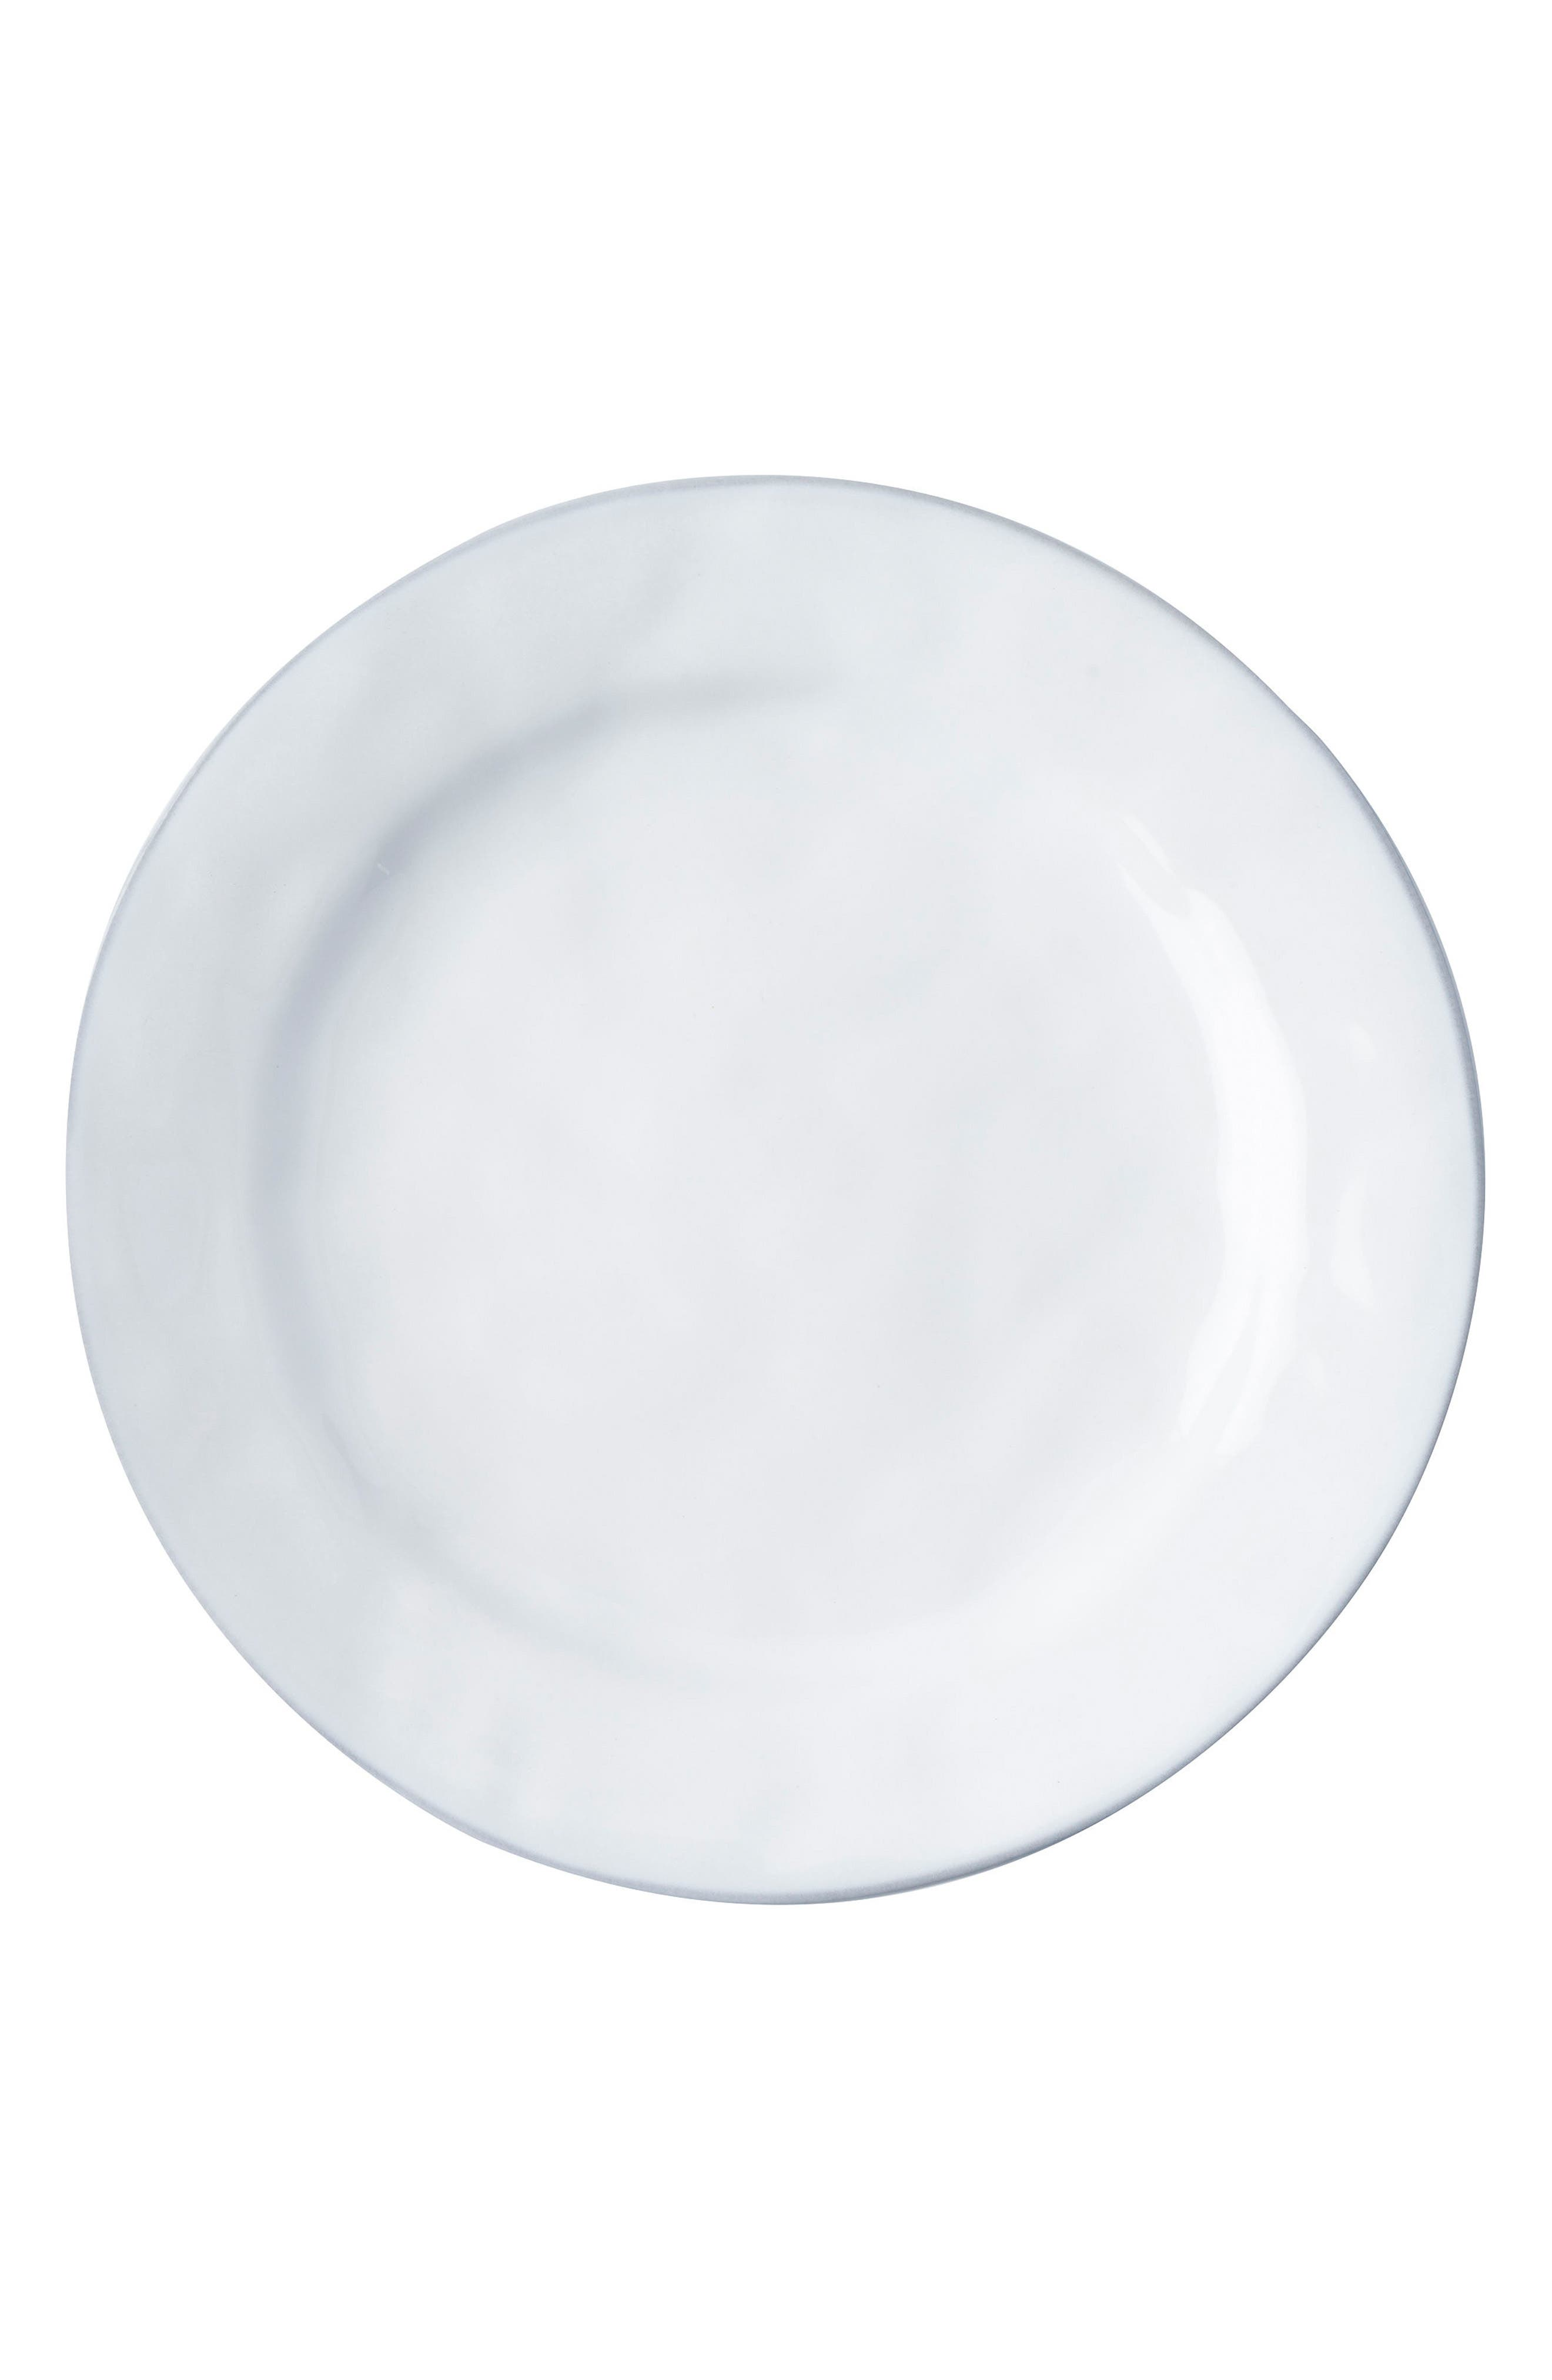 Quotidien White Truffle Ceramic Dinner Plate,                             Main thumbnail 1, color,                             WHITE TRUFFLE